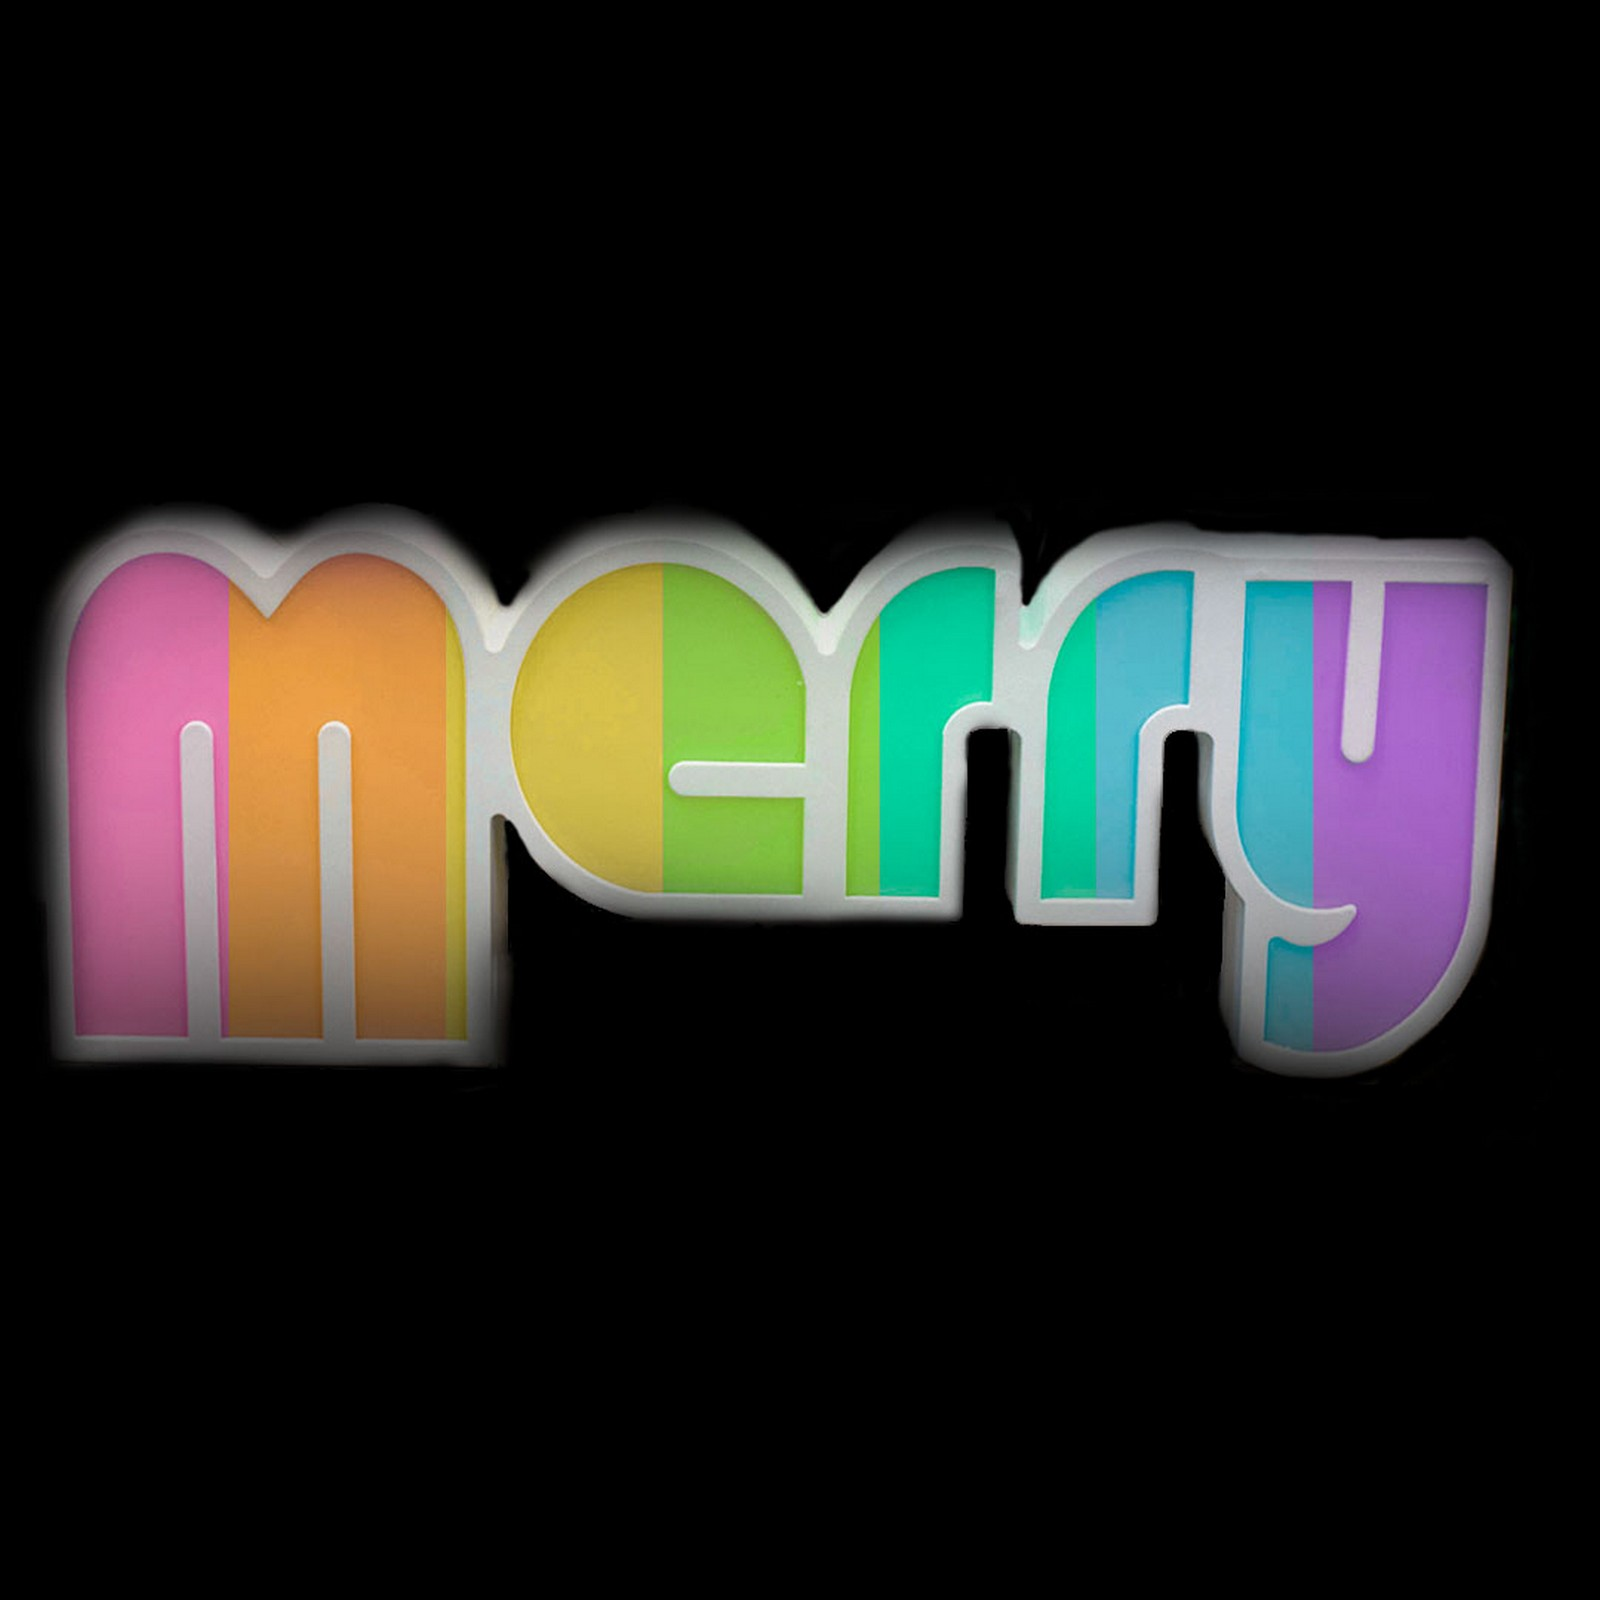 Led Merry Shelf Sign - Changing Rainbow Coloured Lights